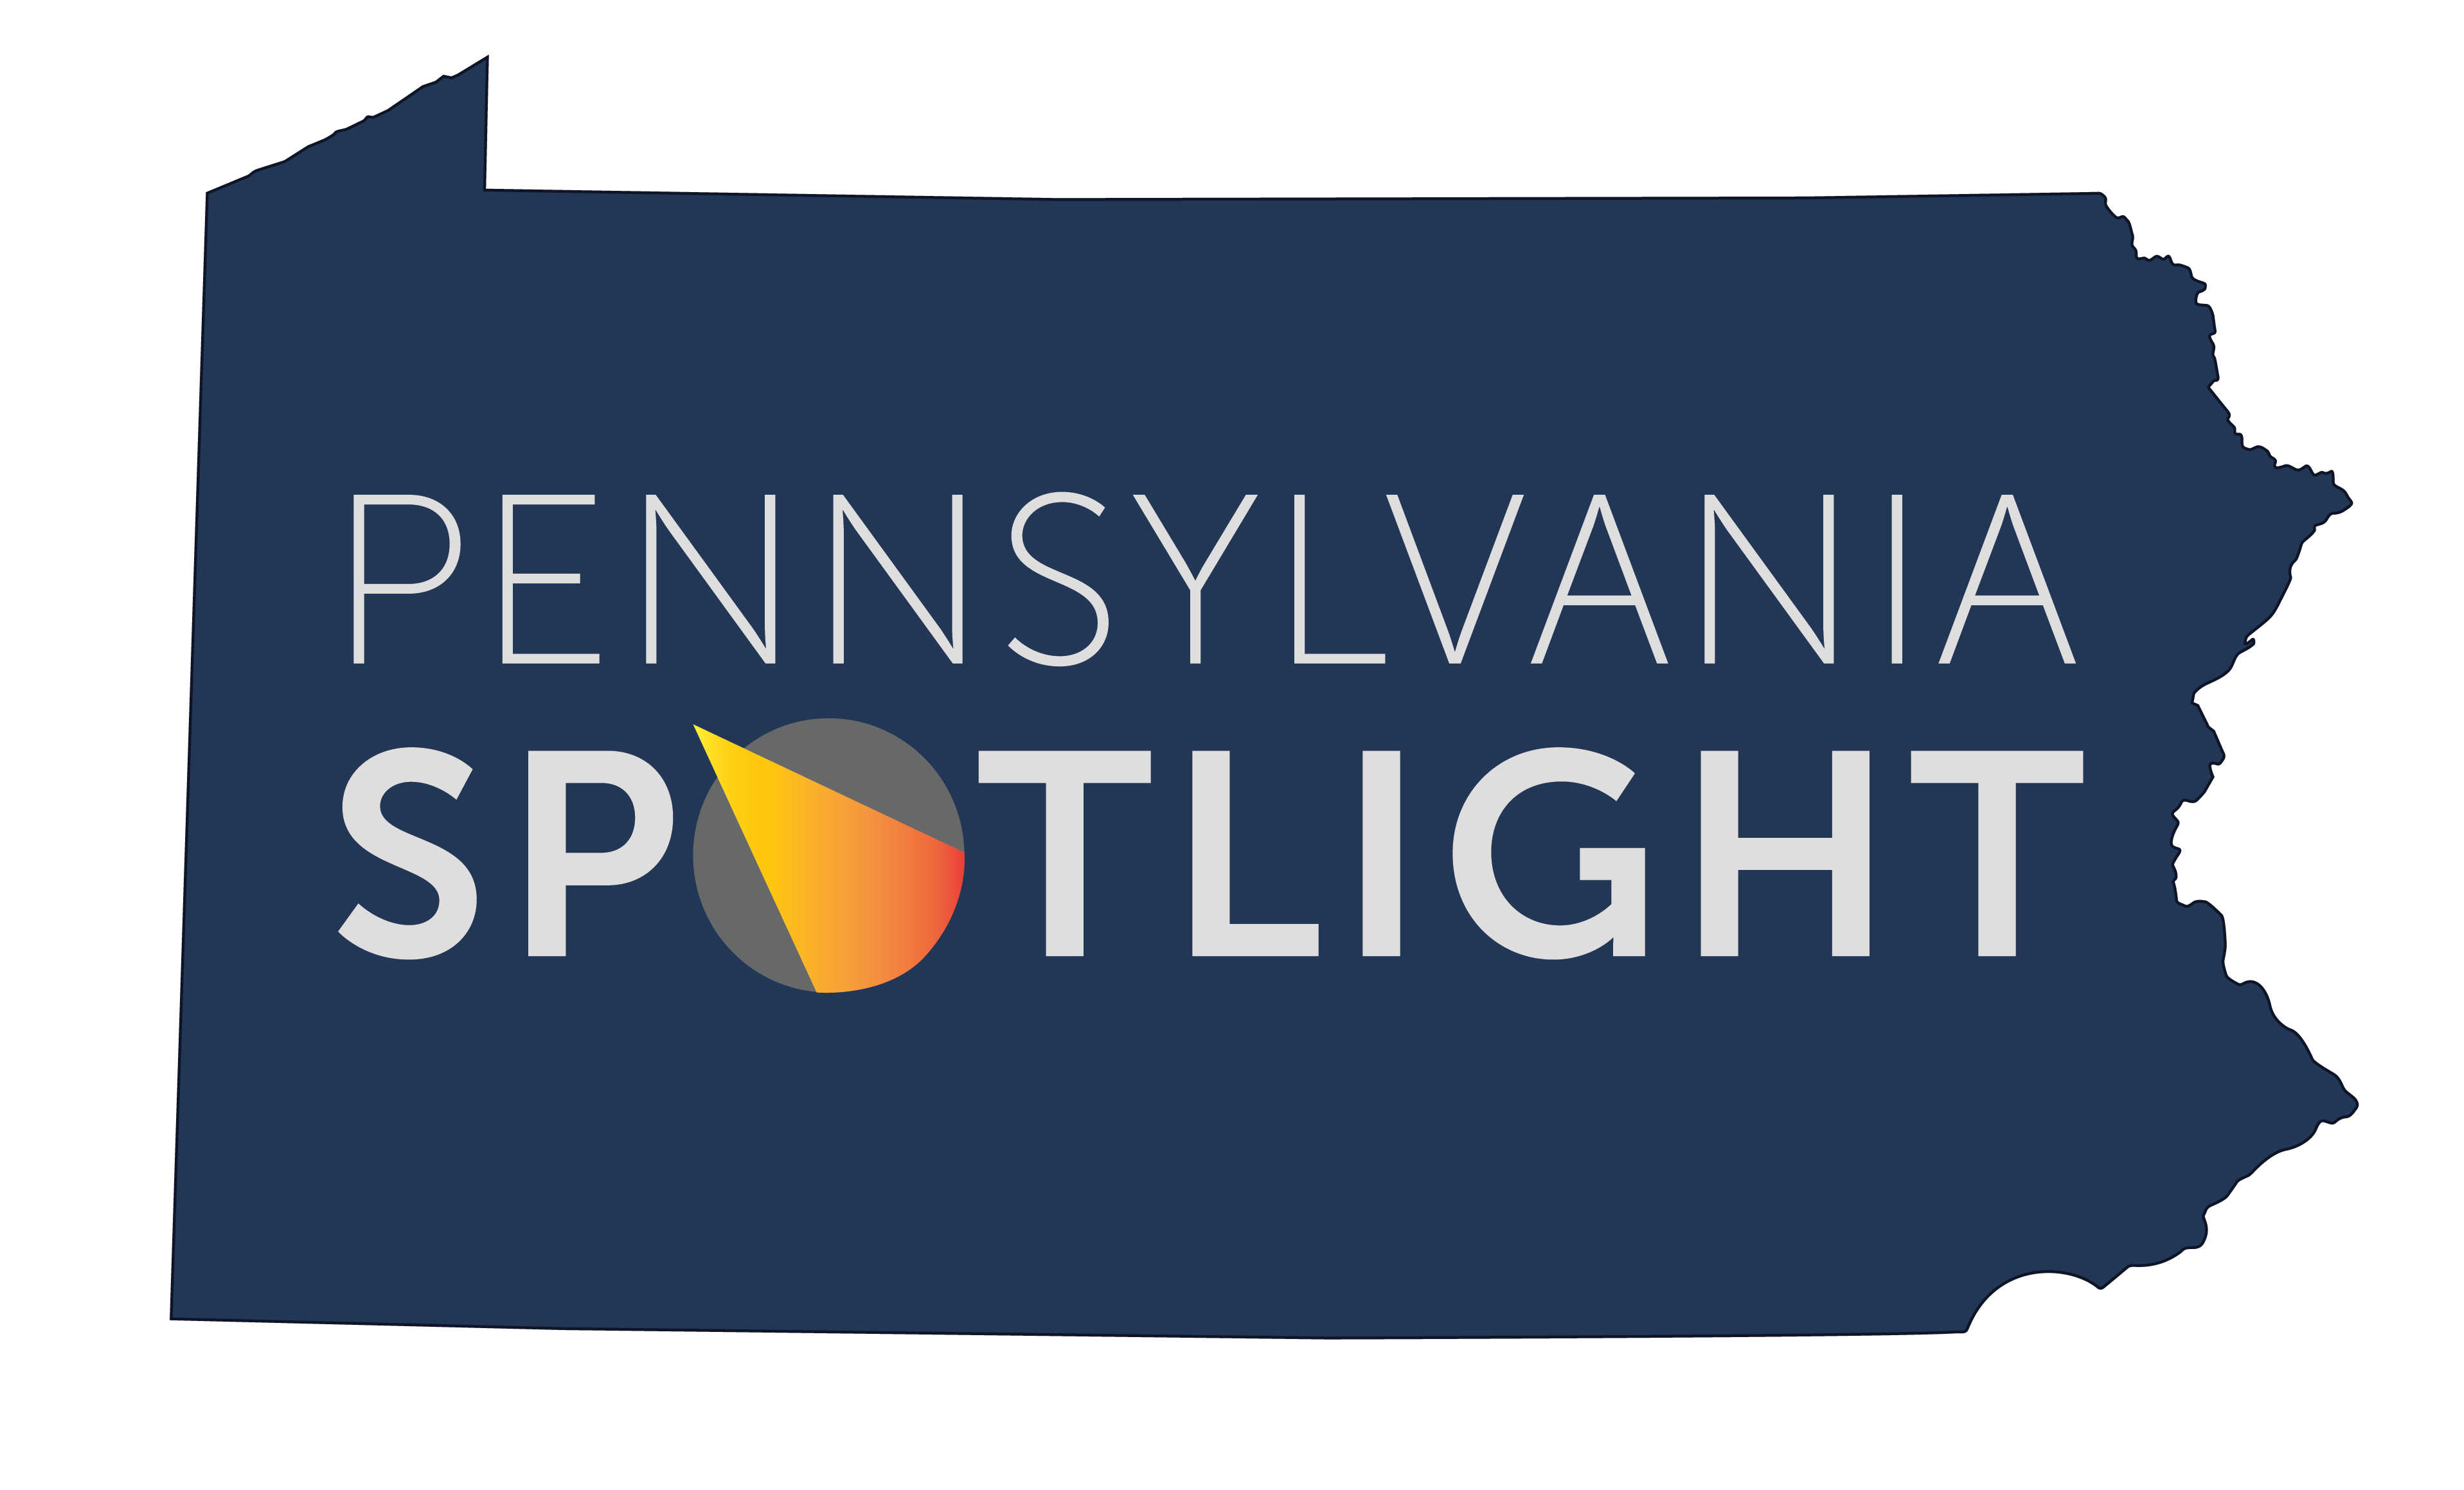 Pennsylvania Spotlight